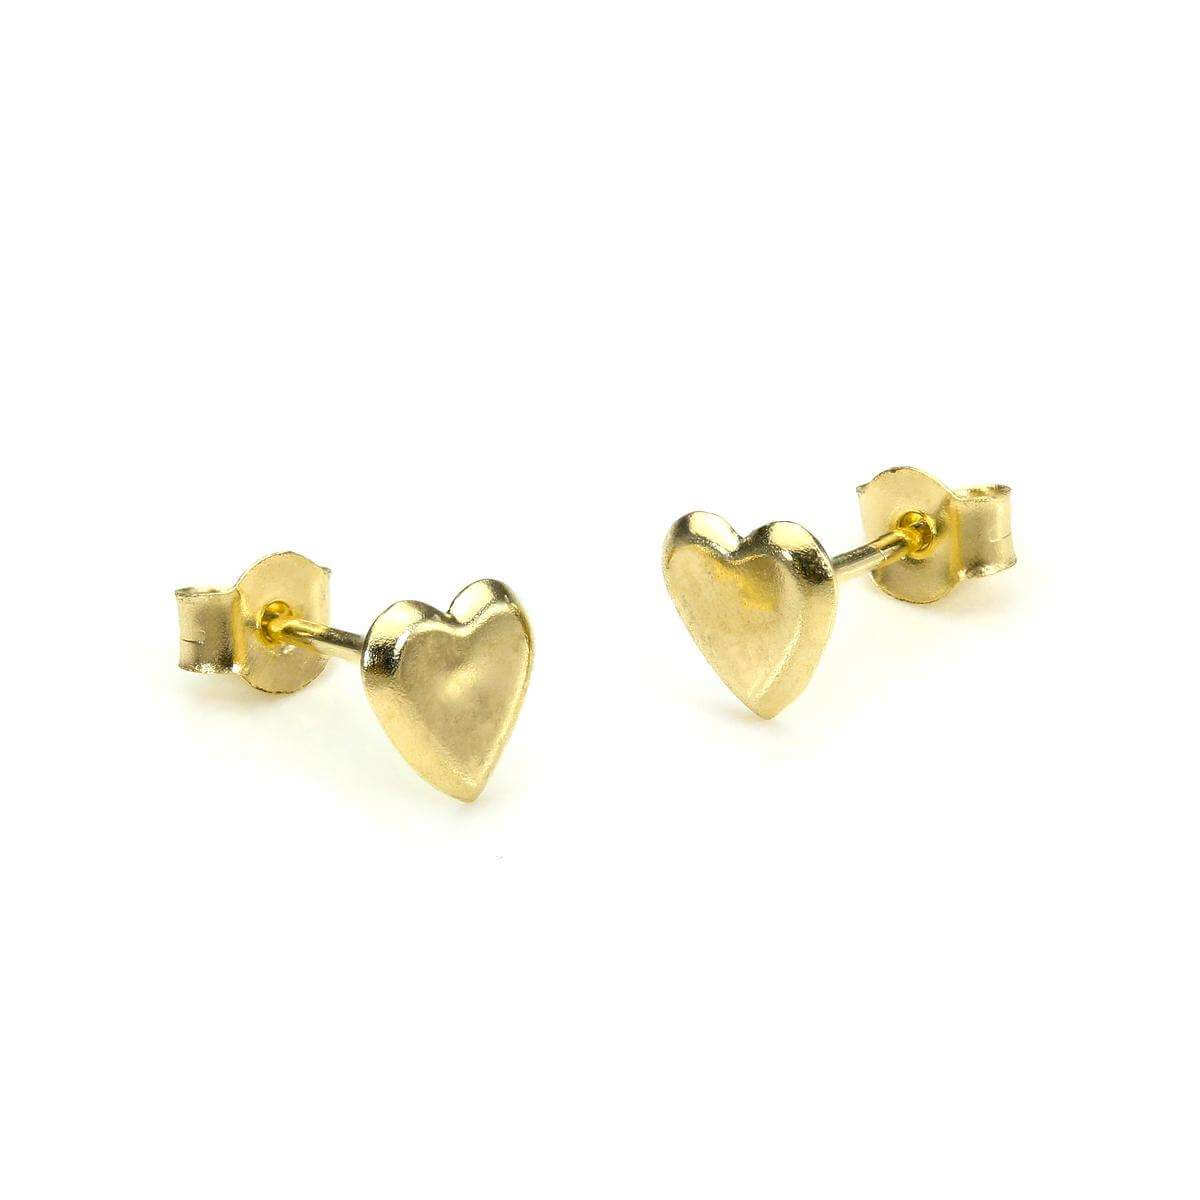 9ct Yellow Gold Small Flat Heart Stud Earrings